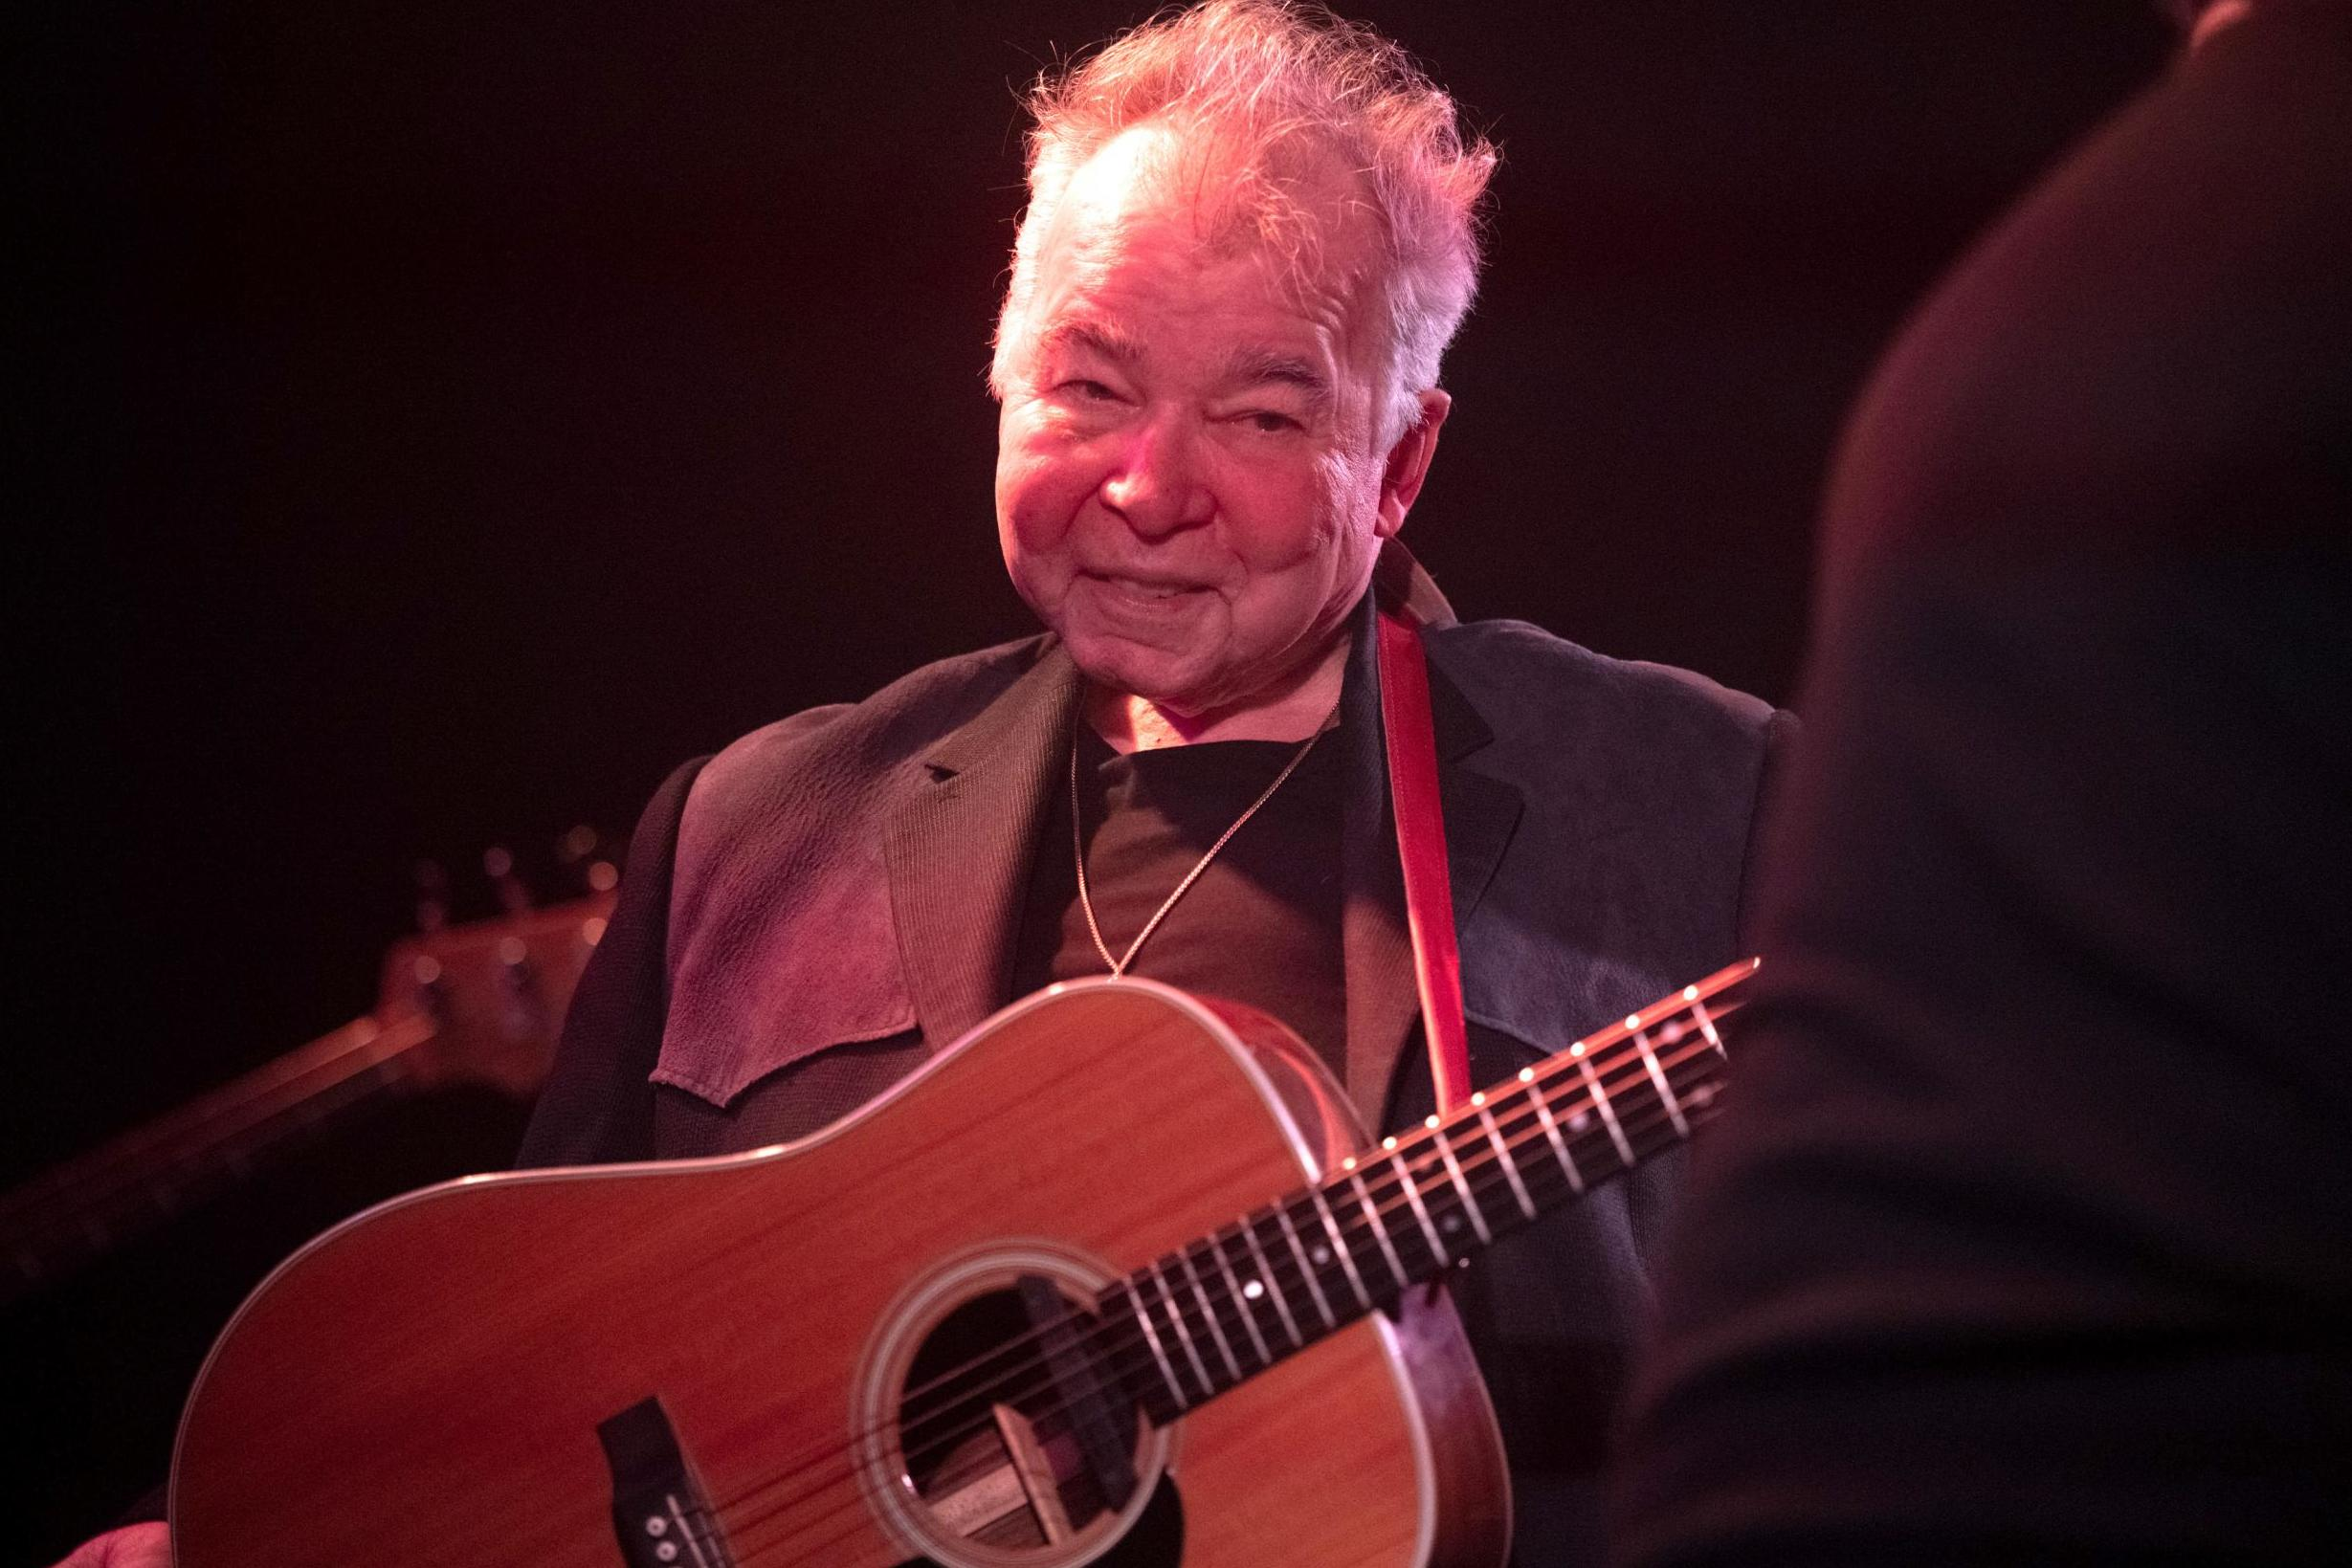 Bruce Springsteen and Carole King lead emotional tributes to John Prine